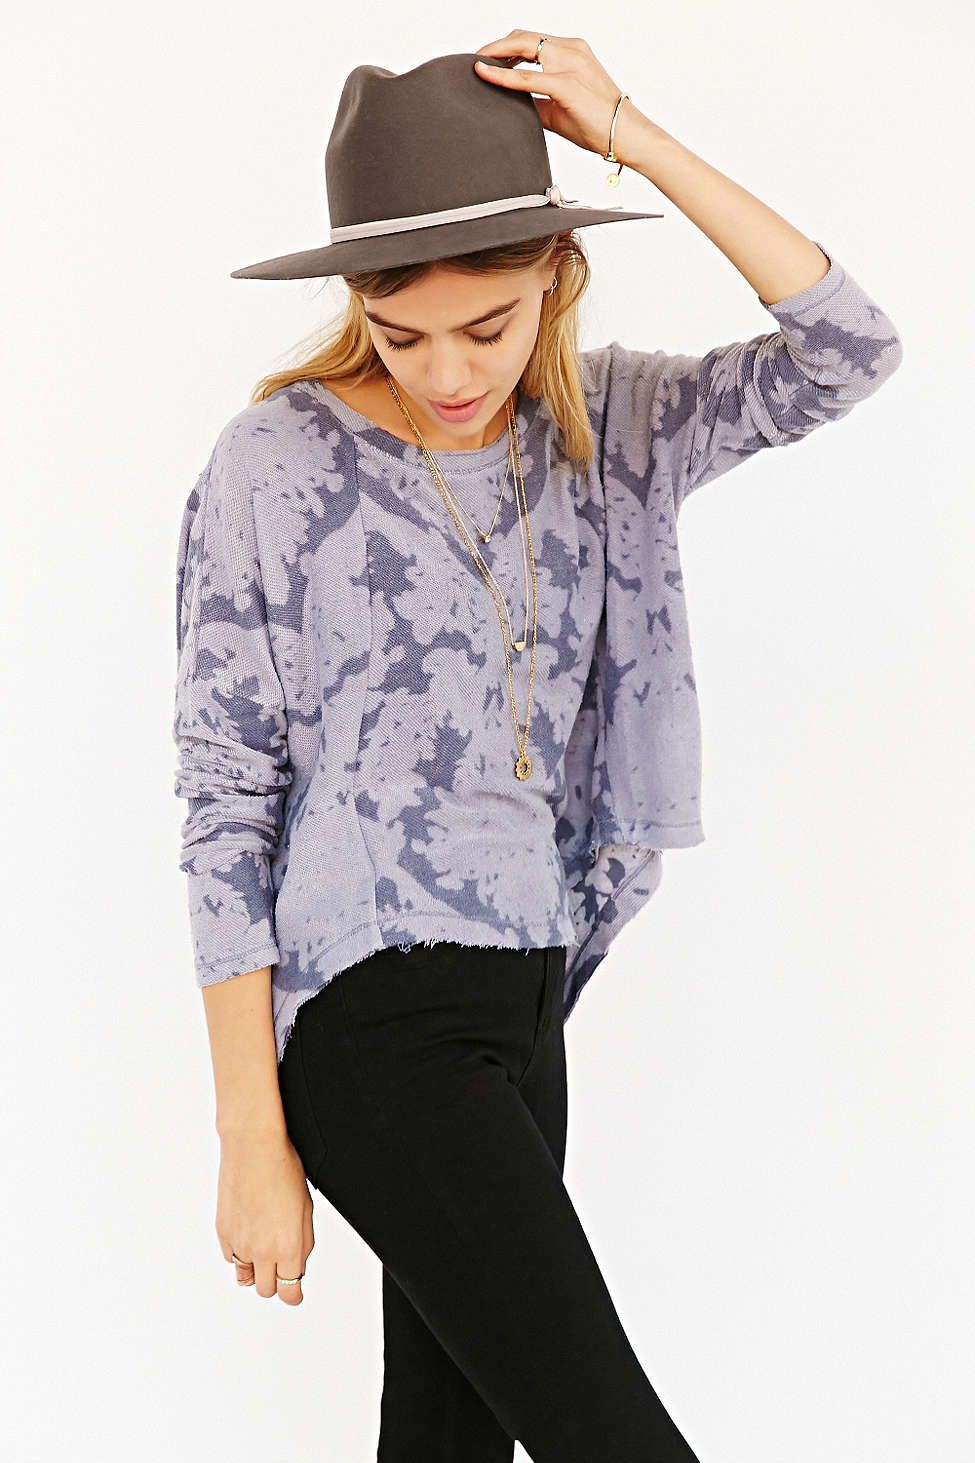 Pins And Needles Skinny-Sleeve Oversized Tee - Urban Outfitters